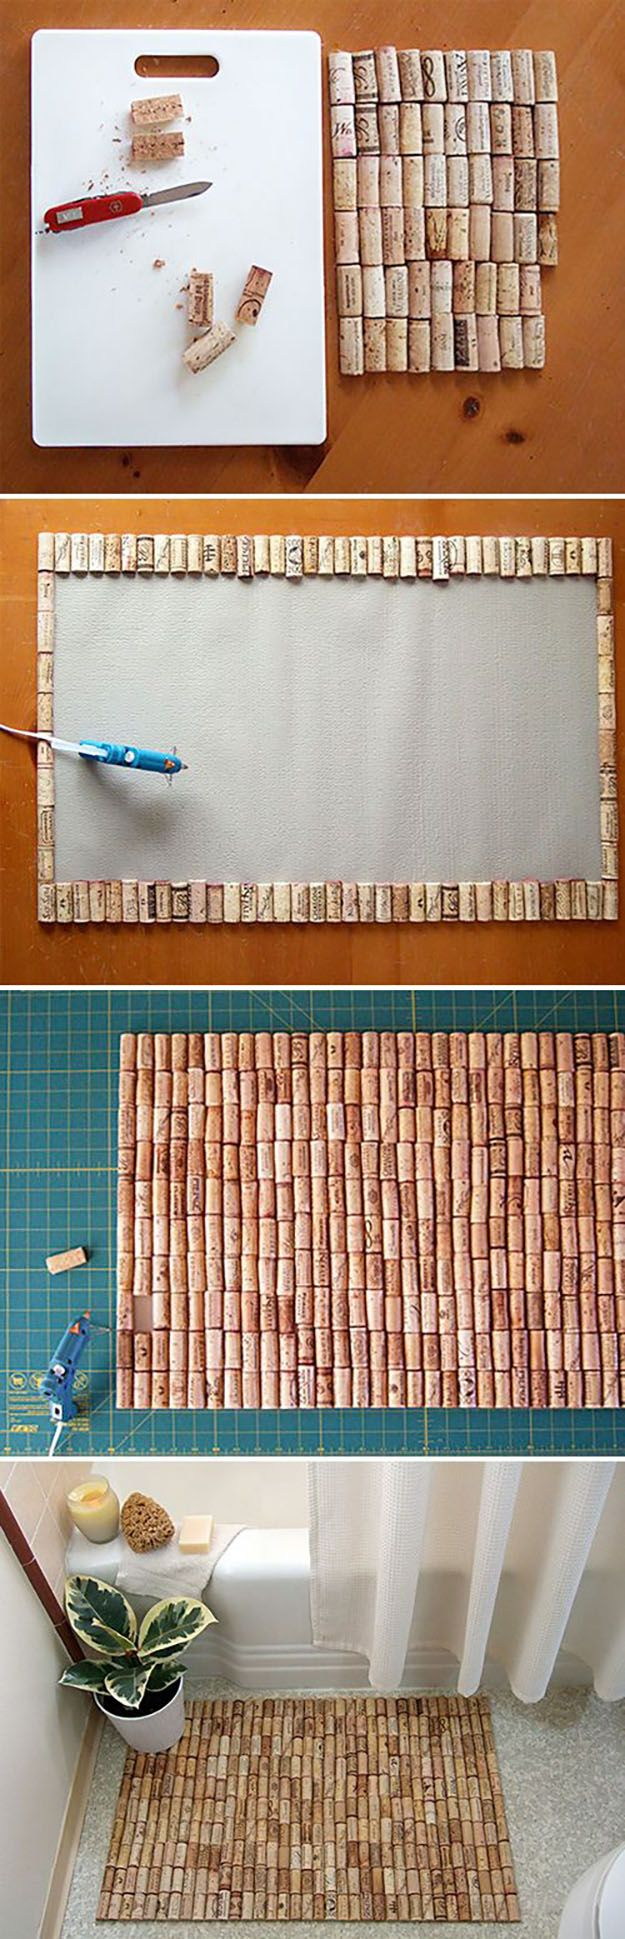 Finally! A craft projects to use up all those leftover wine corks that are collecting dust.